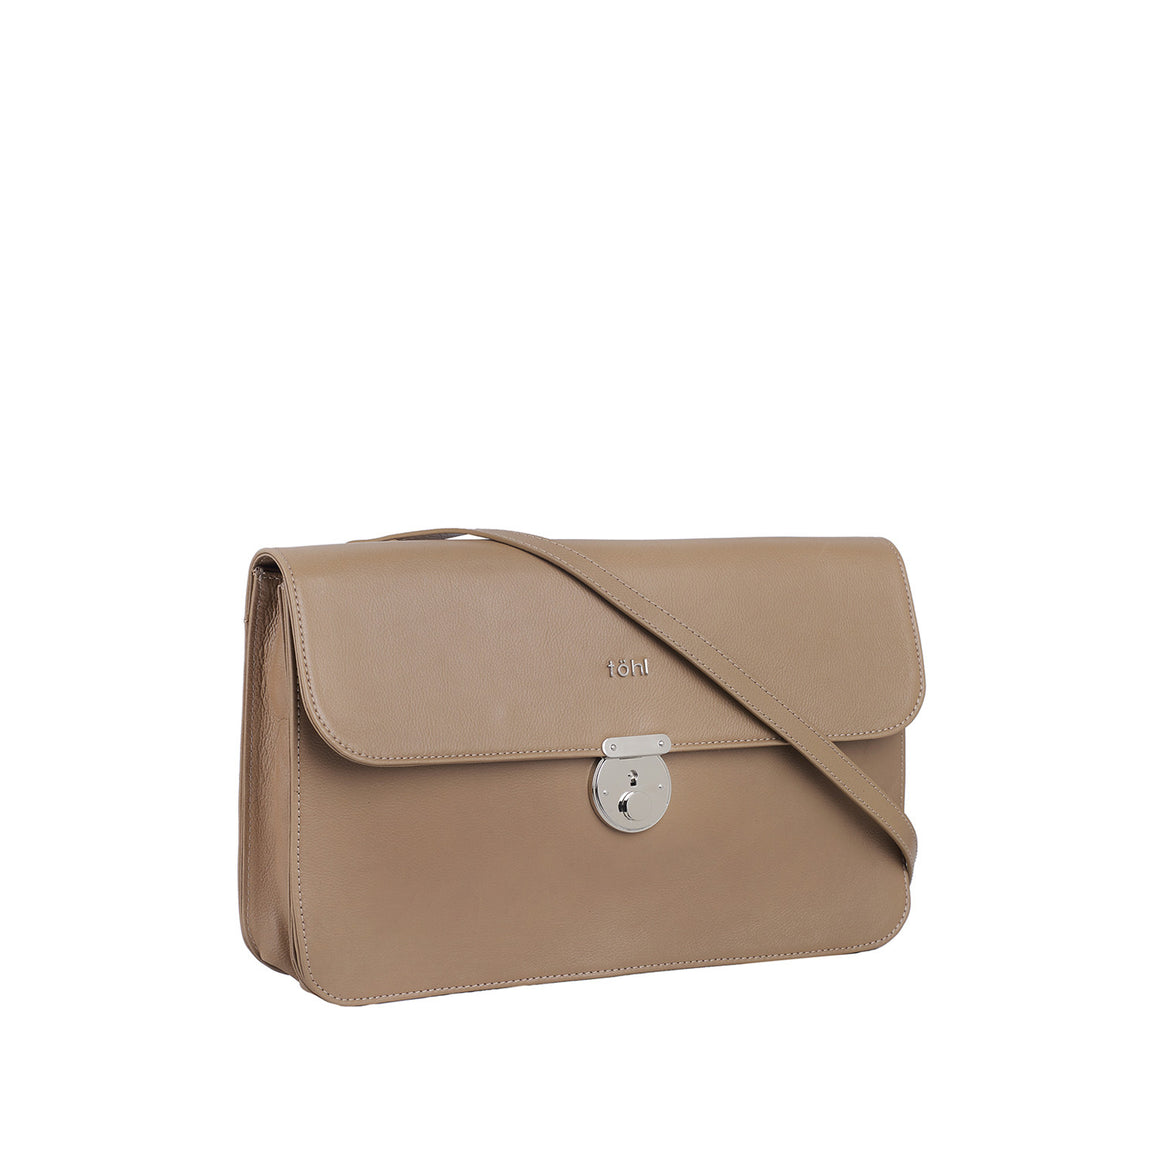 SG 0005 - TOHL WAVERLEY WOMEN'S SLING BAG - NUDE